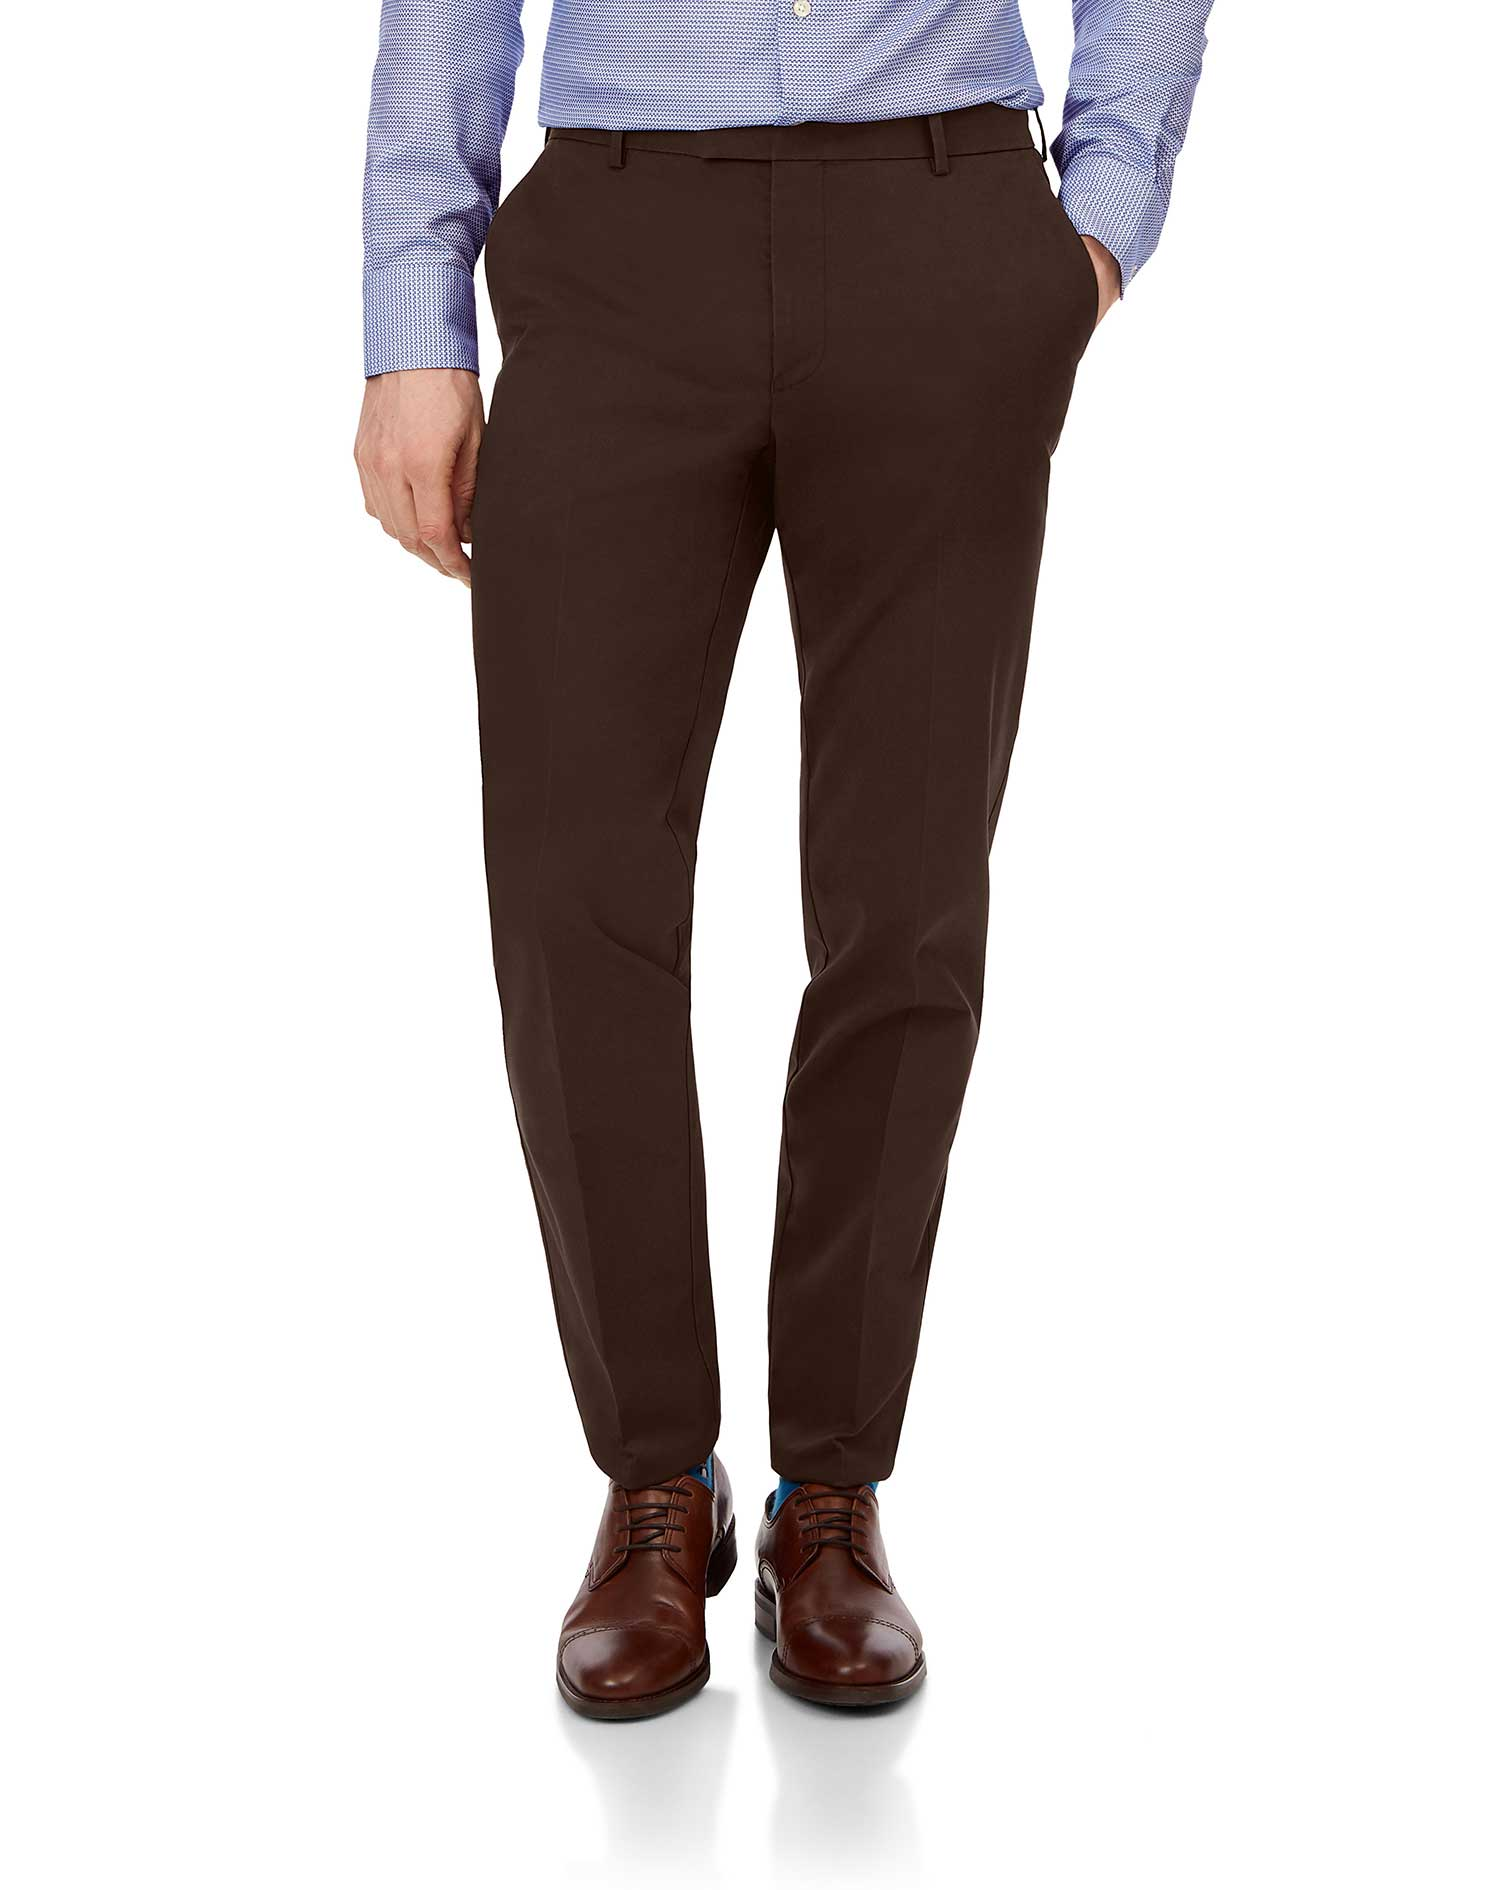 Cotton Chestnut Flat Front Non-Iron Chinos